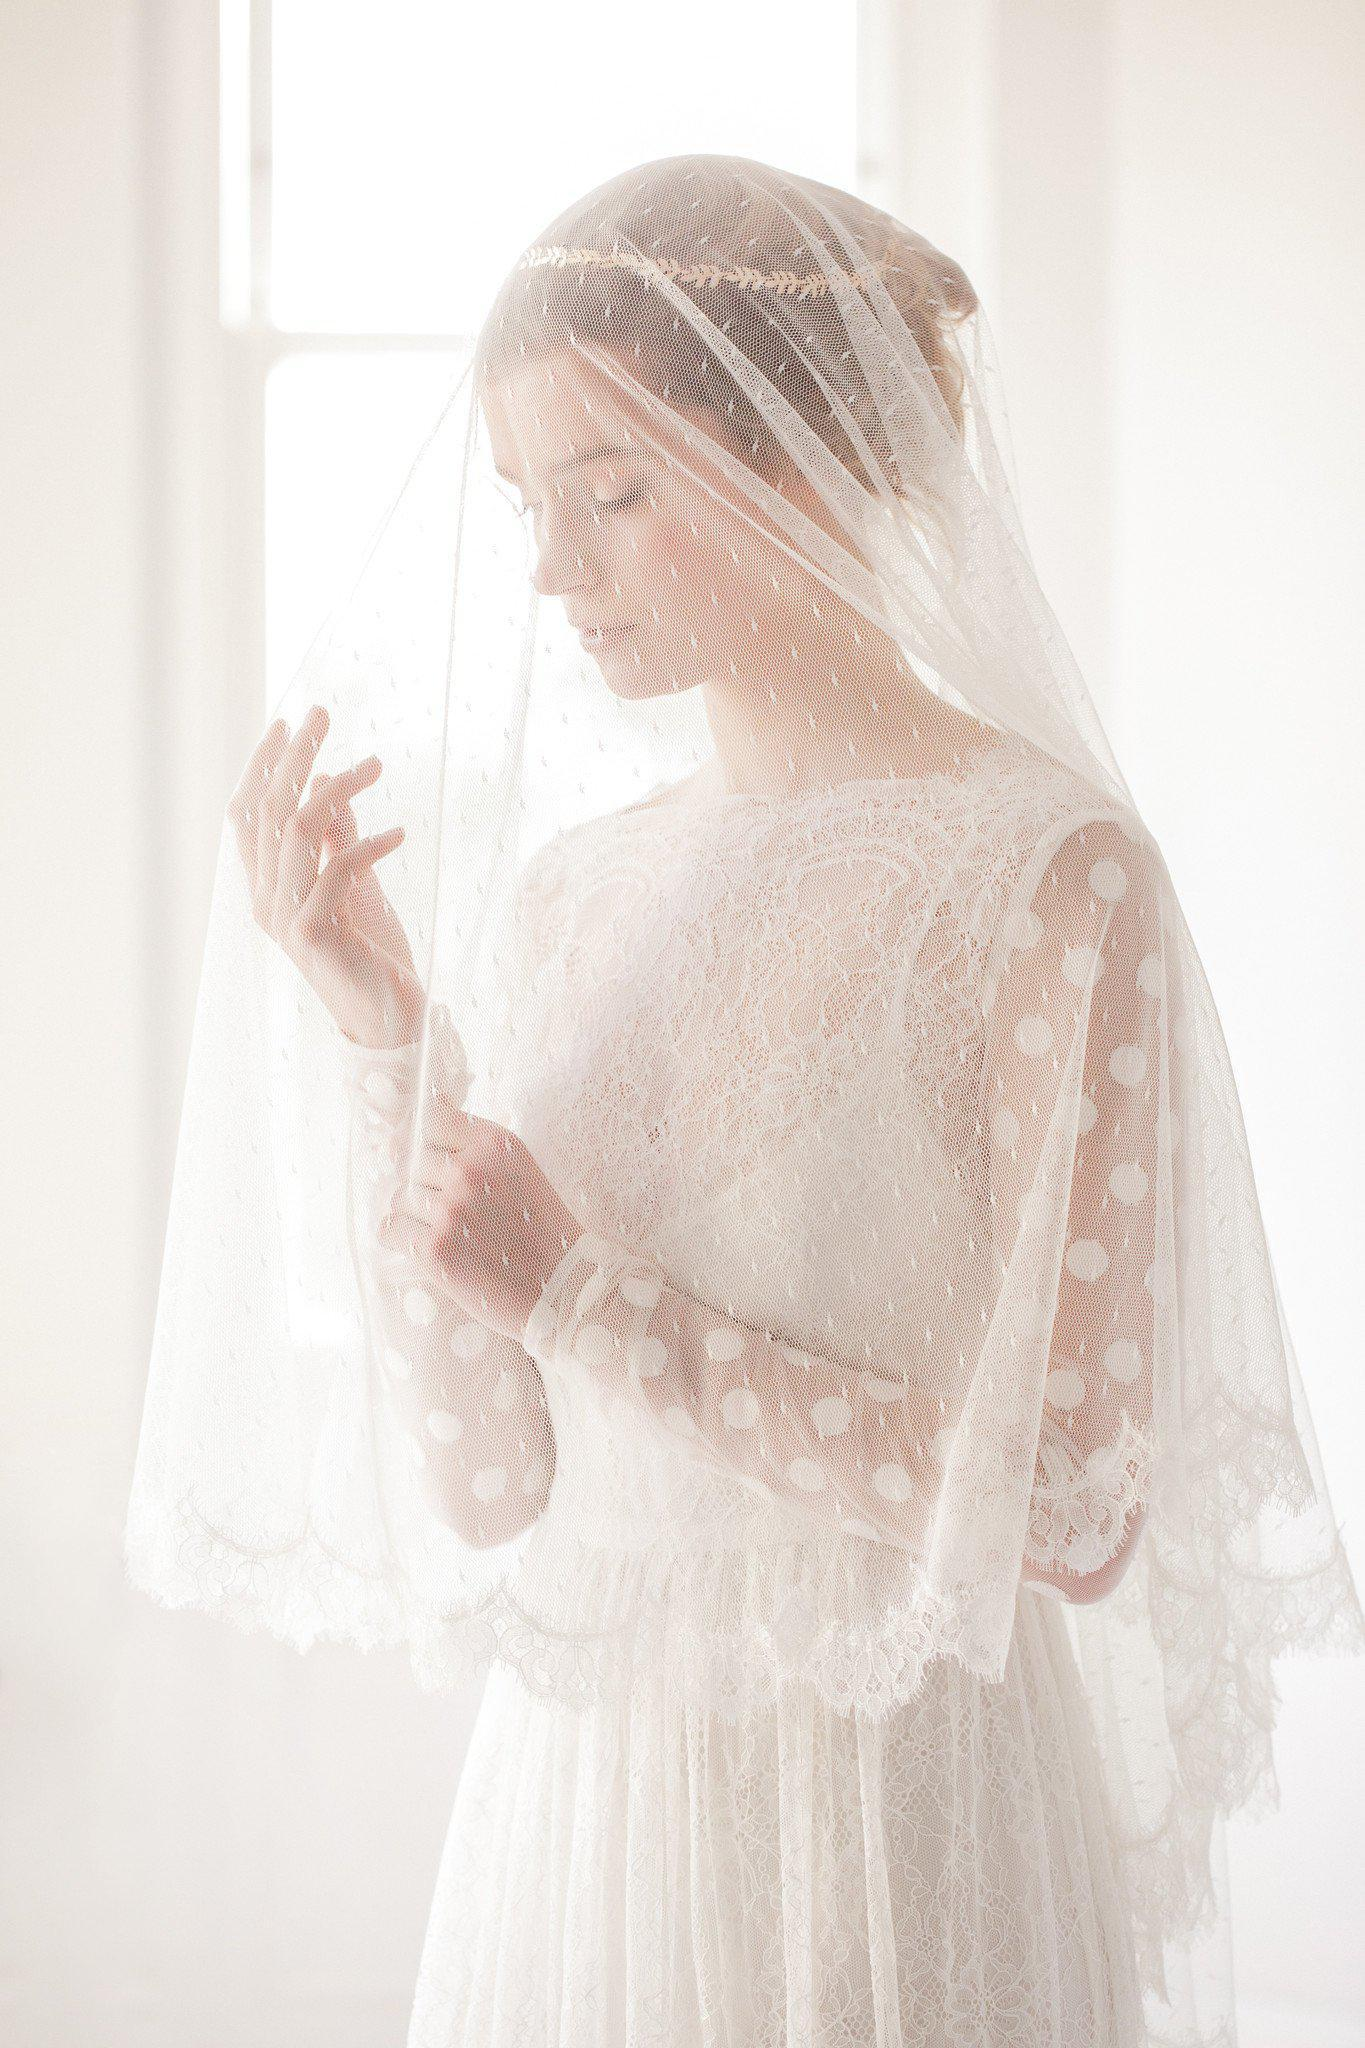 What are veils made from